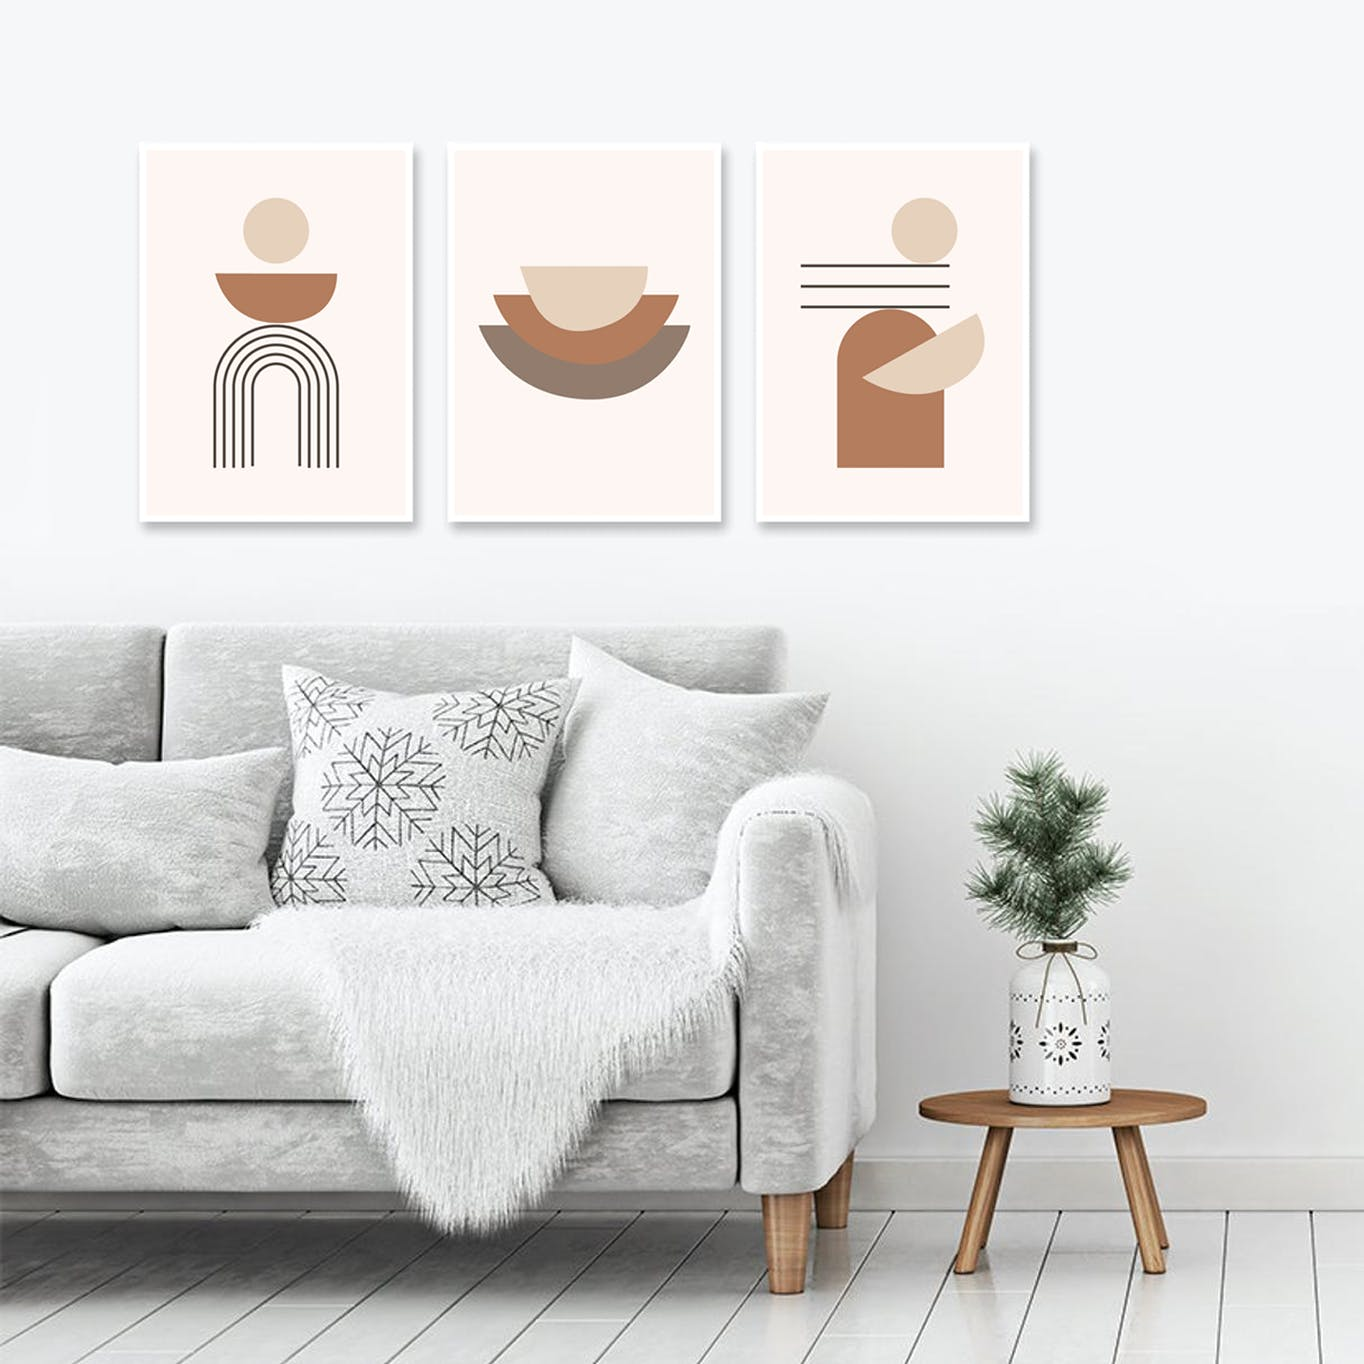 Prints hung up in living room behind sofa